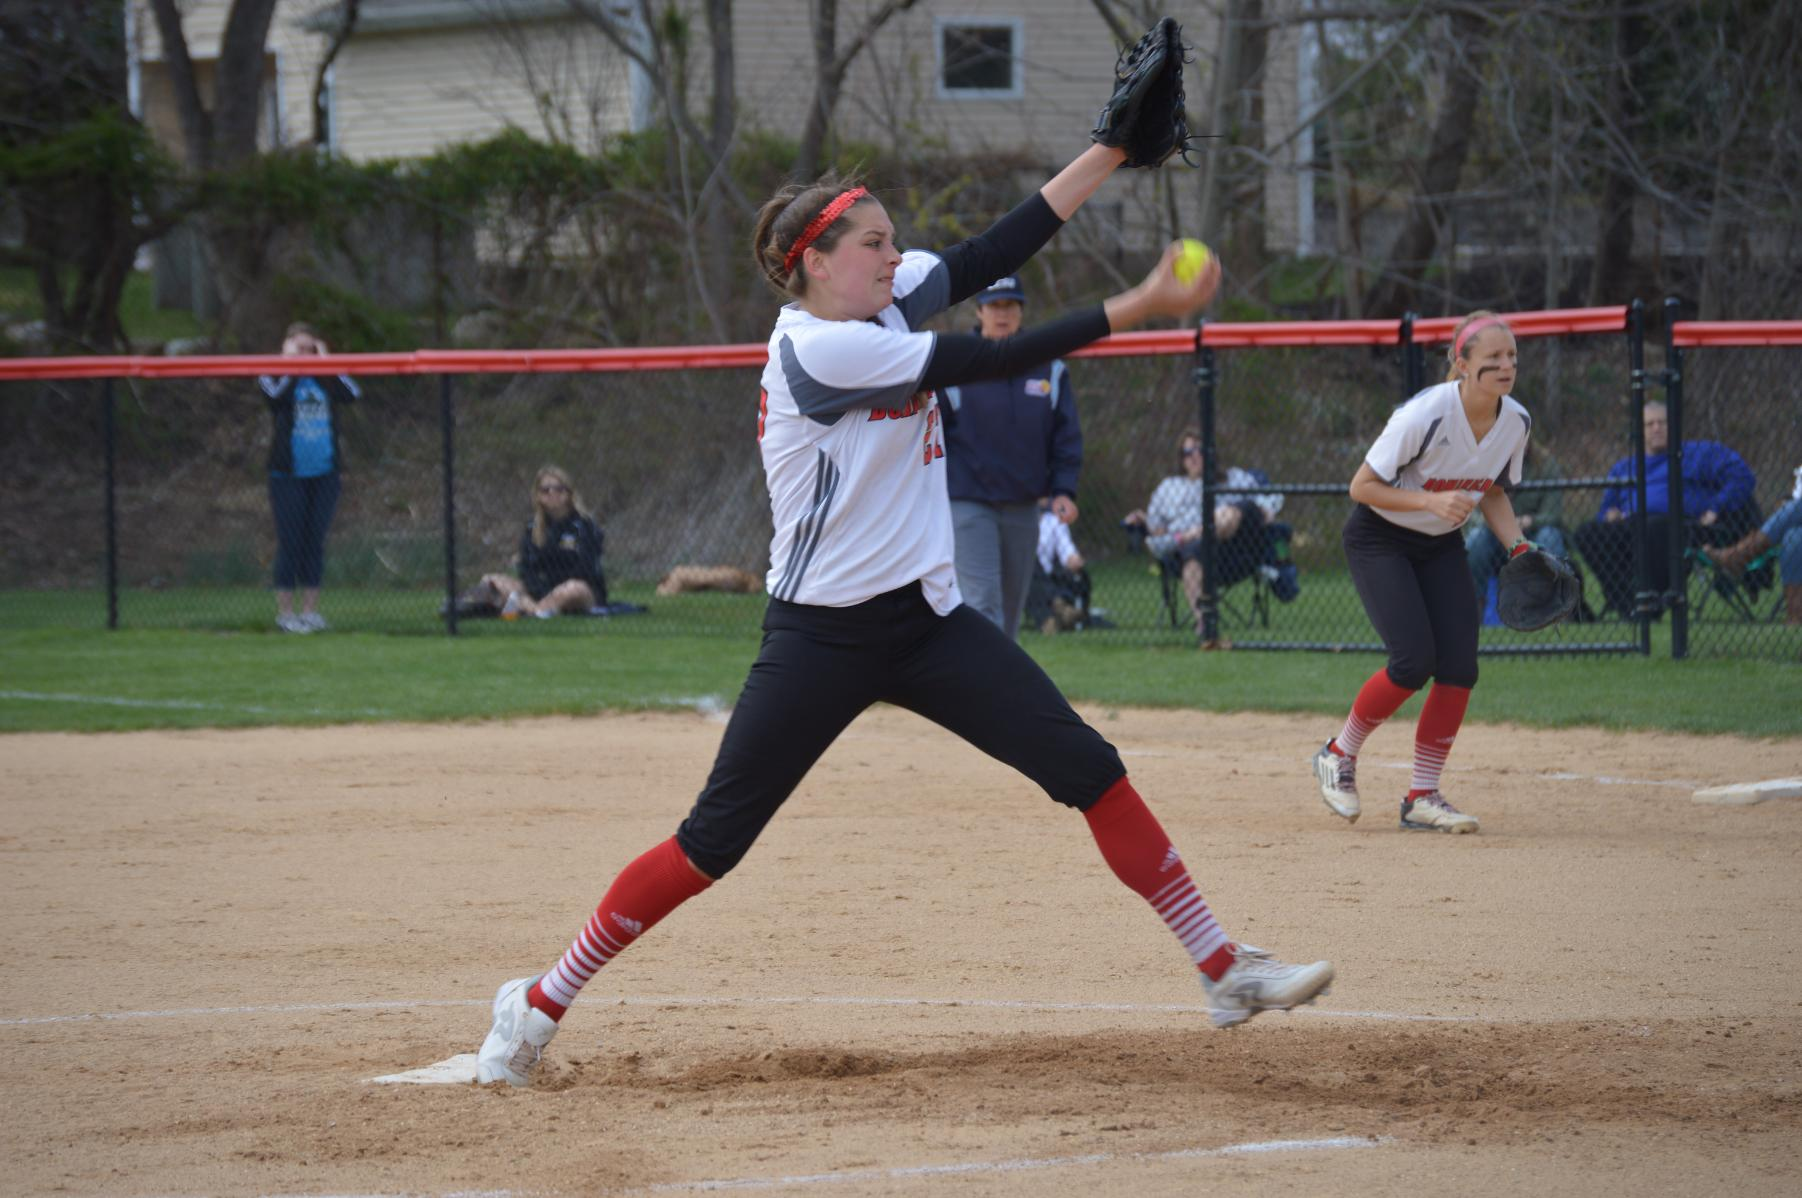 LADY CHARGERS SWEPT BY SOUTHERN NEW HAMPSHIRE